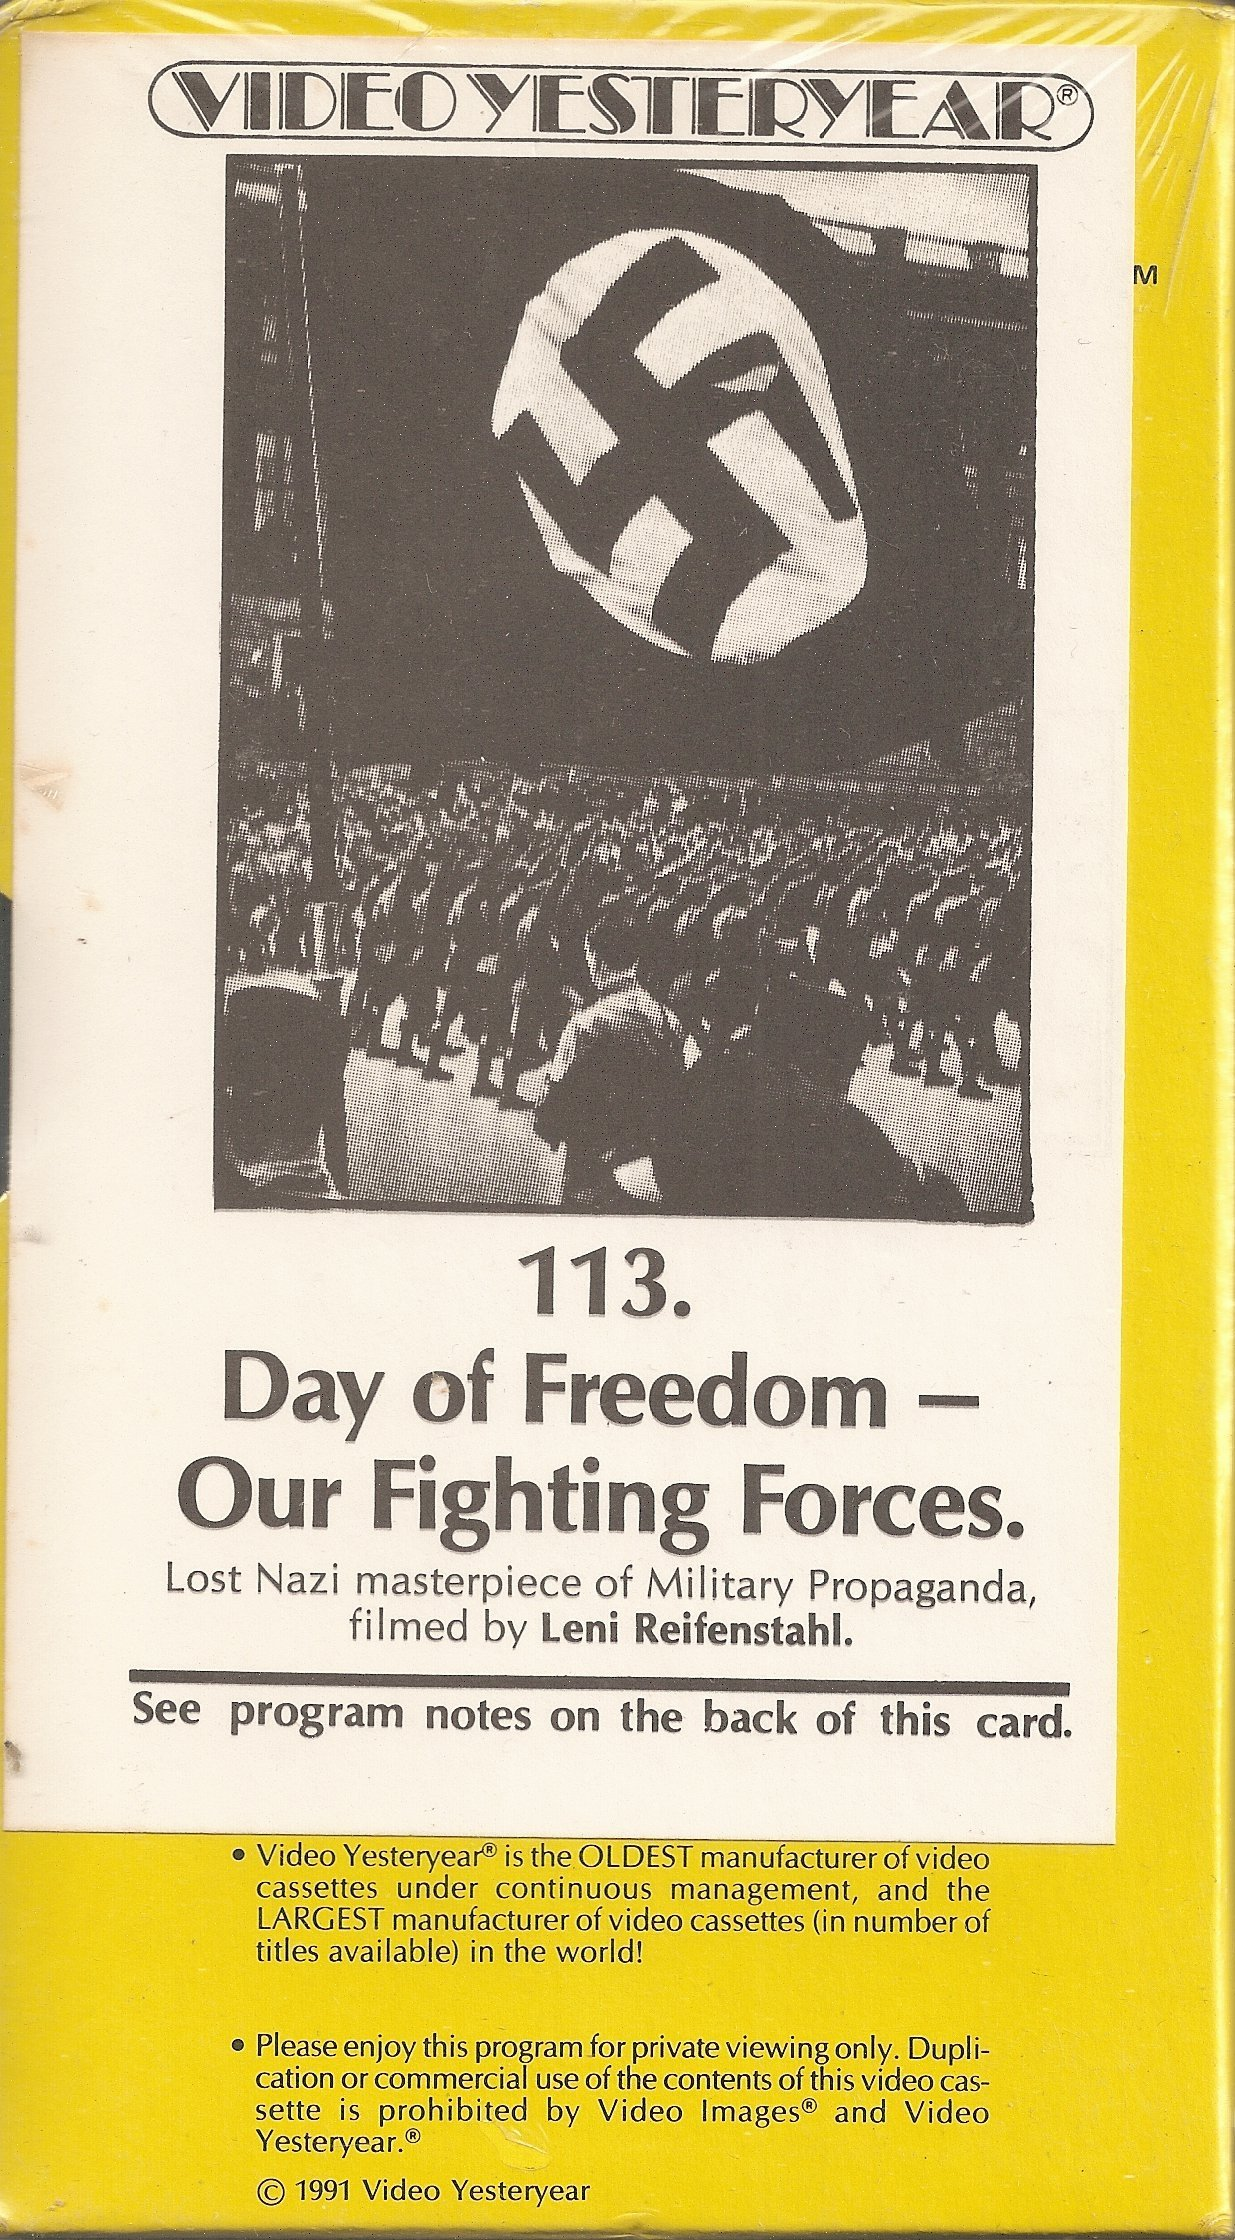 Day of Freedom - Our Fighting Forces (Tag Der Freiheit) (1935-Germany) [VHS] by Nazi Party Propaganda